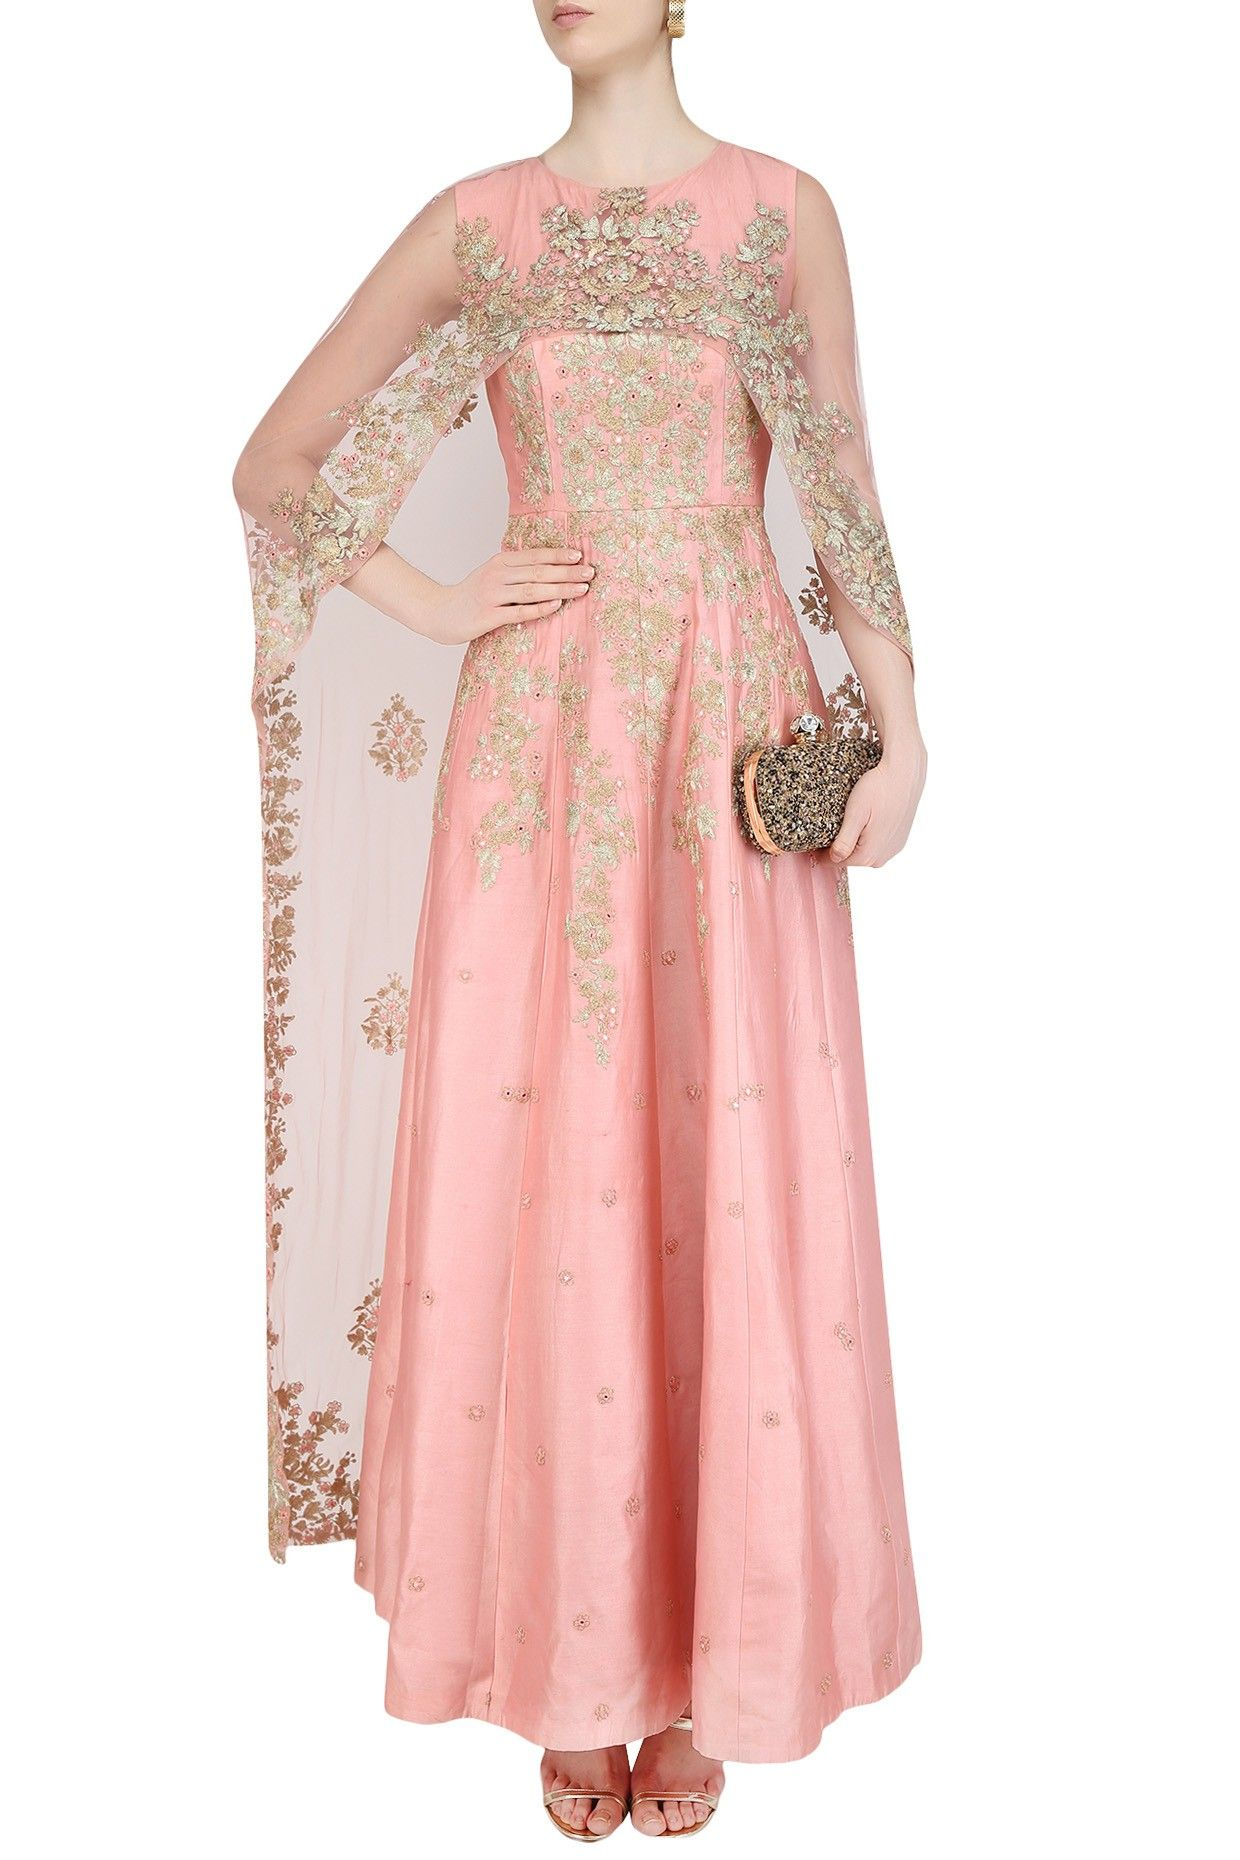 ANEESH AGARWAAL Flamingo Pink Floral Embroidered Cape Anarkali Set ...